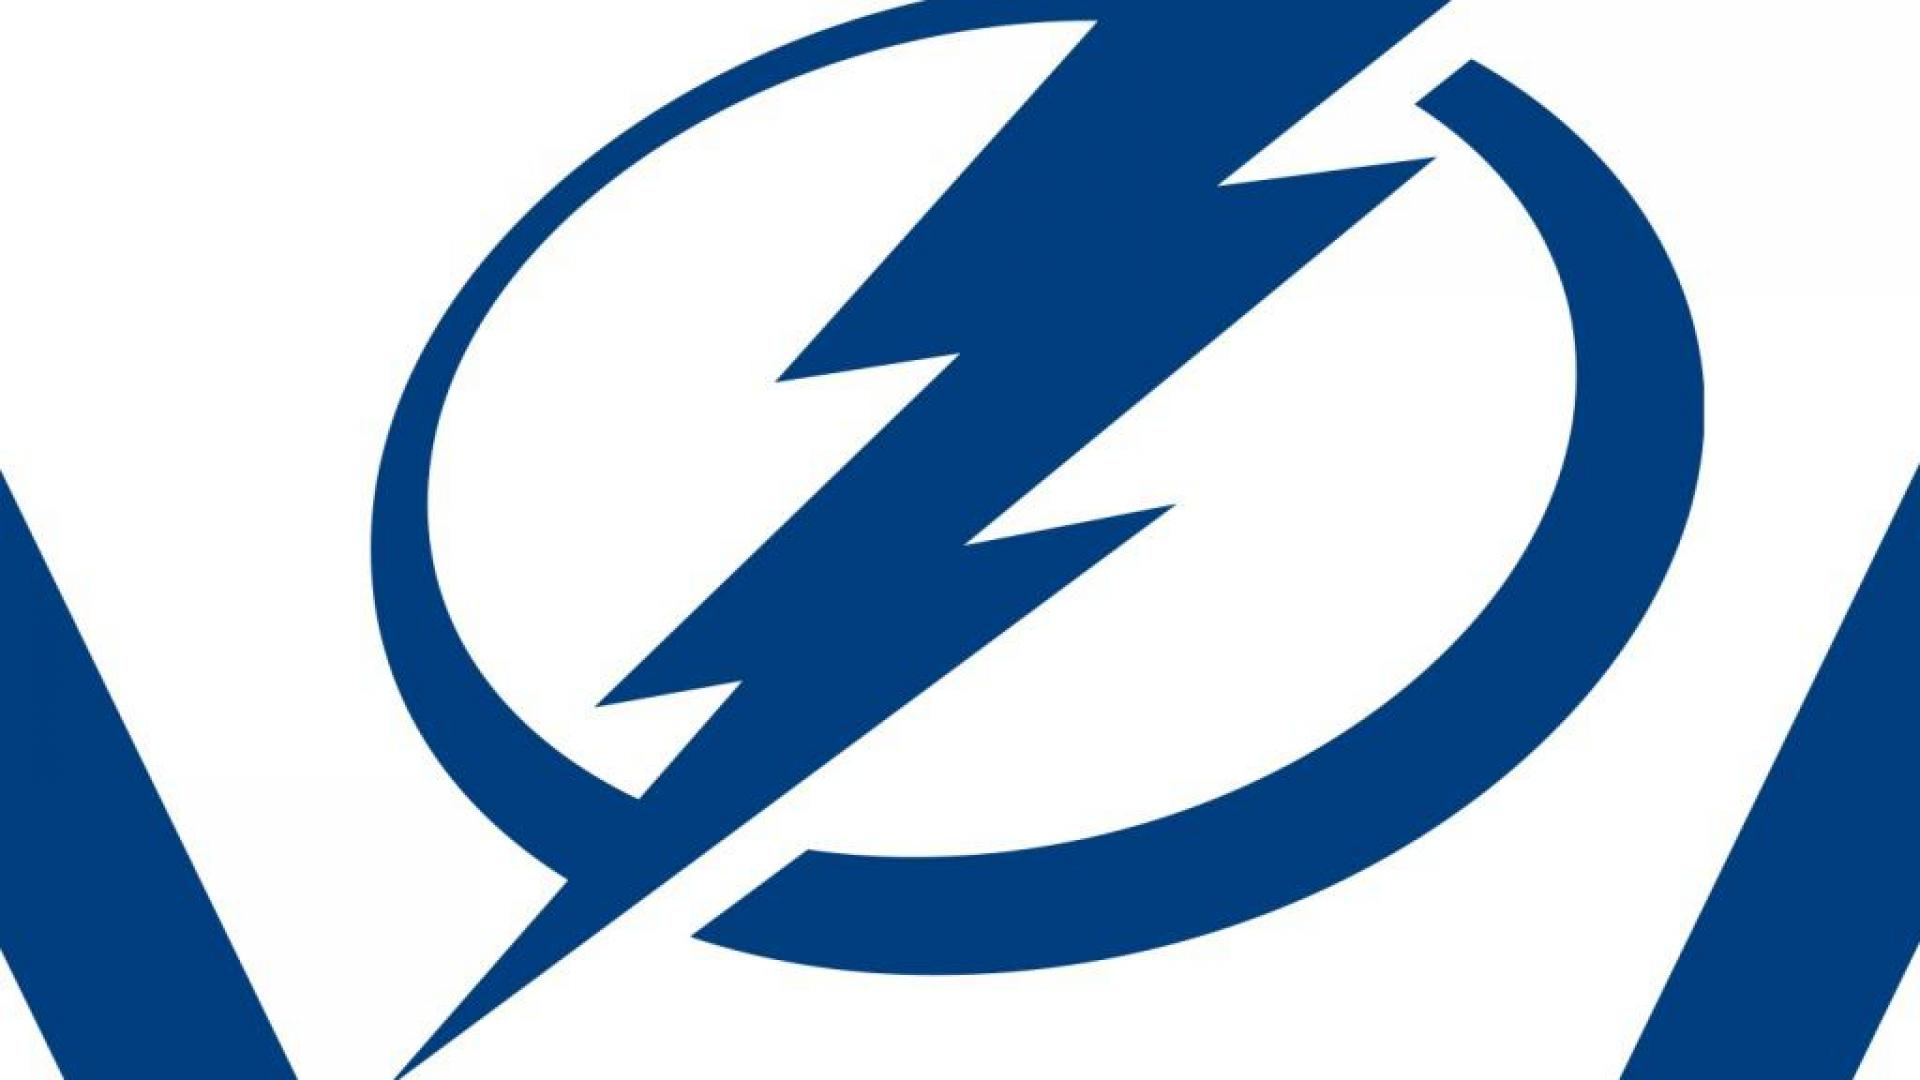 TAMPA BAY LIGHTNING WALLPAPER   151107   HD Wallpapers 1920x1080